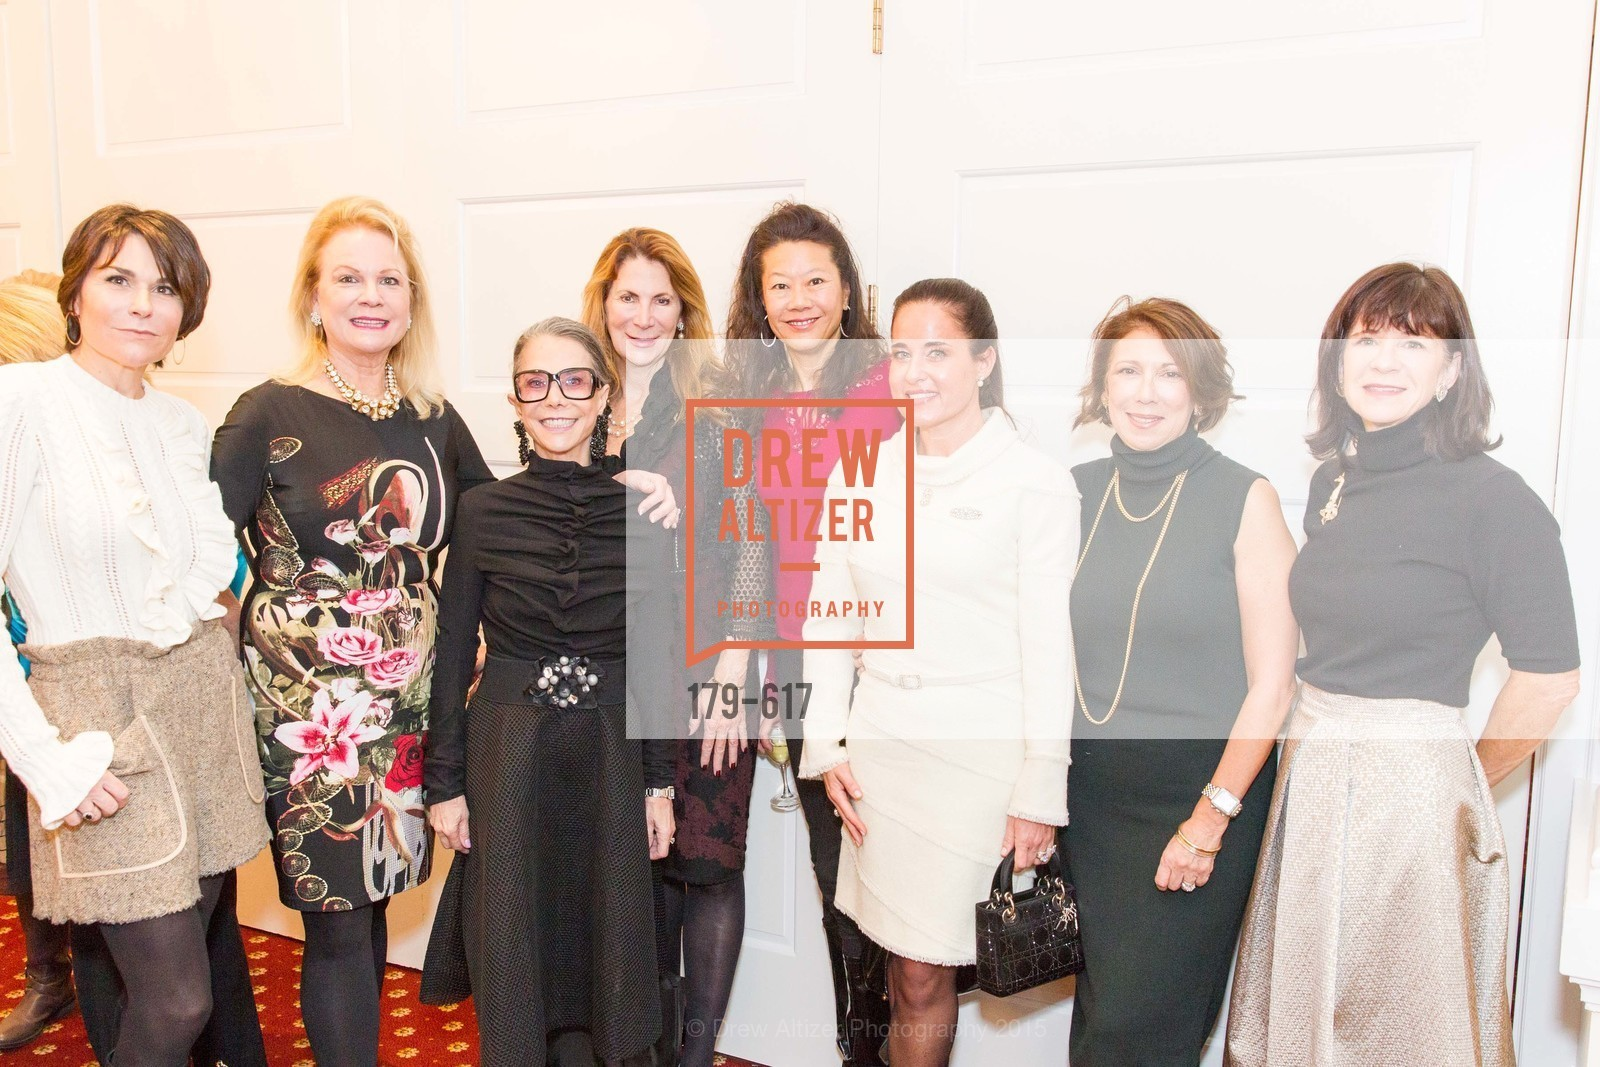 Debbie DiMaggio, Claire Kostic, Julie Coplon, Patricia Ferrin Loucks, Michelle Helm, Natalia Urrutia, Cynthia Karasik, Pam McBain, Boy's & Girls' Towns of Italy Holiday Luncheon, The Olympic Club. 524 Post Street, December 3rd, 2015,Drew Altizer, Drew Altizer Photography, full-service agency, private events, San Francisco photographer, photographer california